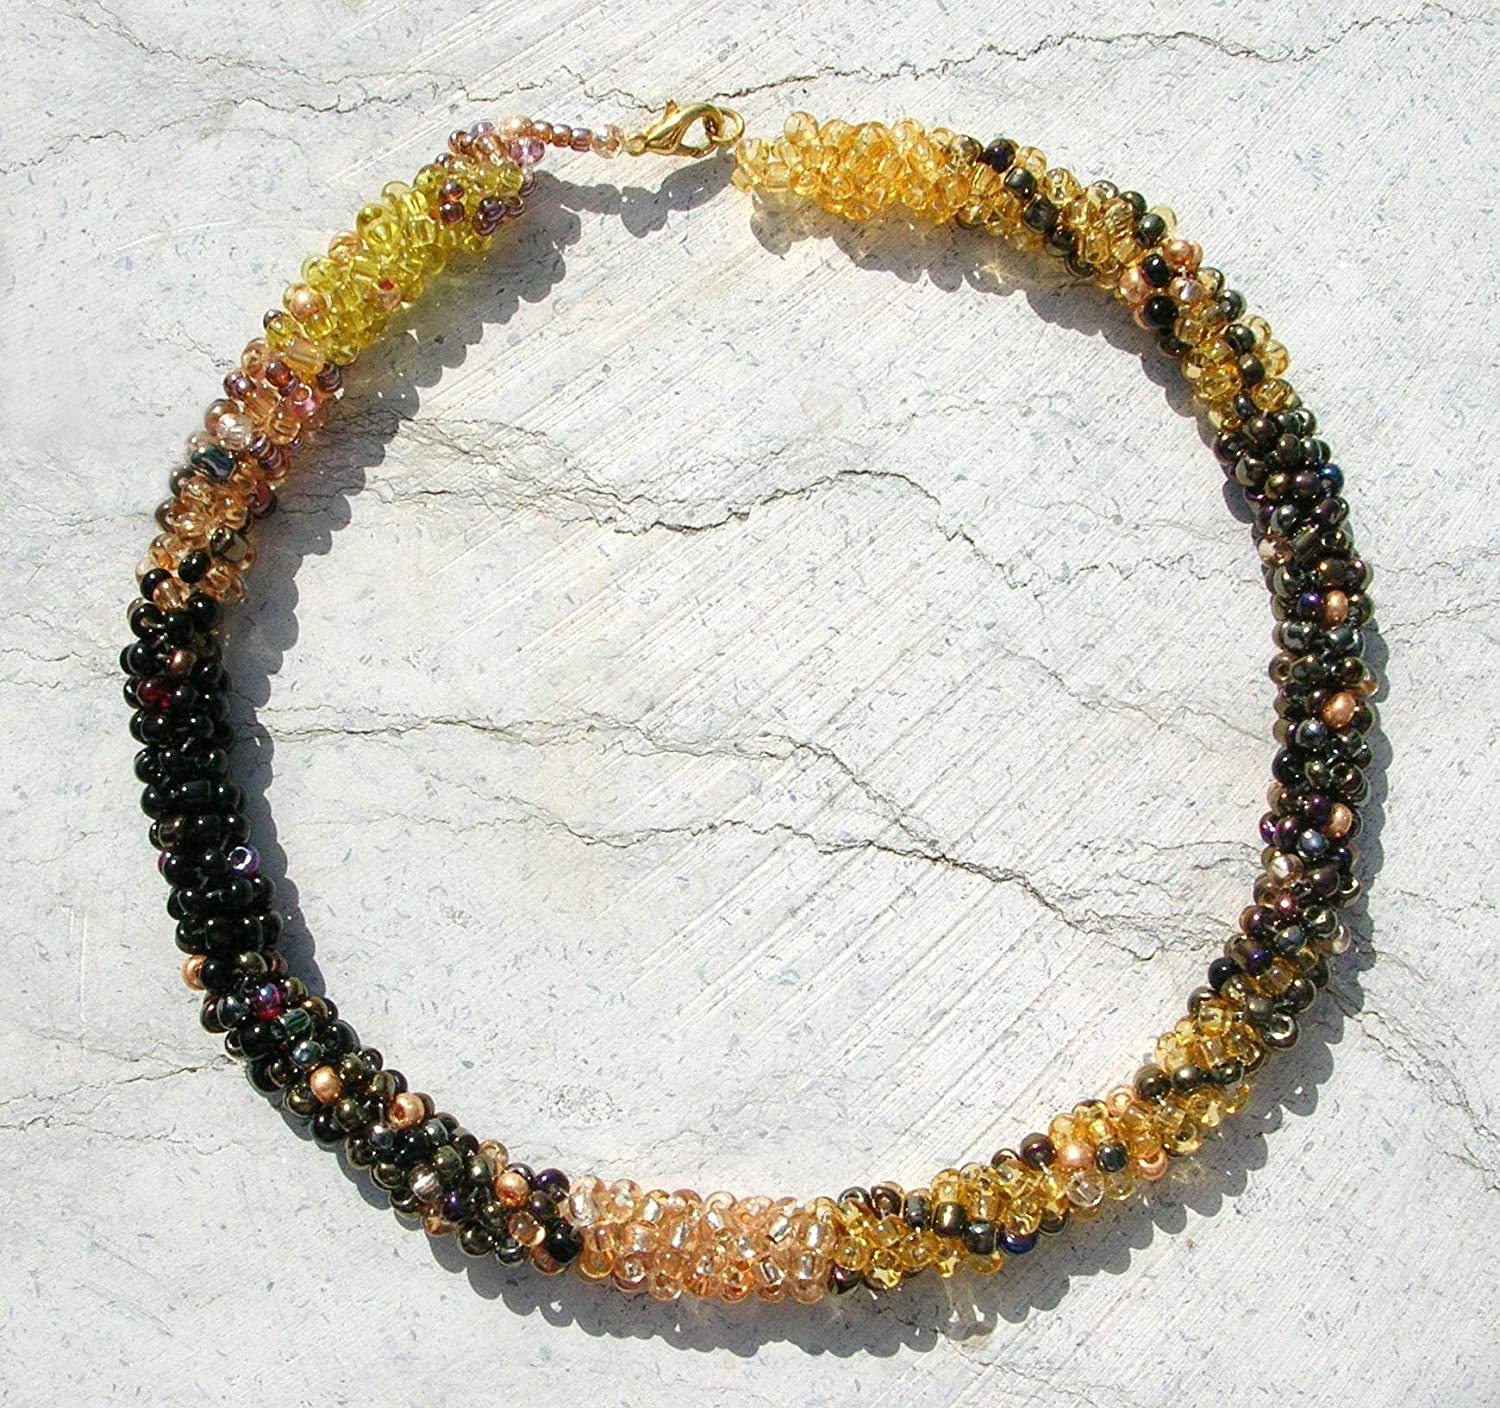 Amazon Com Beaded Rope Necklace Seed Bead Necklace Yellow Black Asymmetric Spiral Necklace Handmade